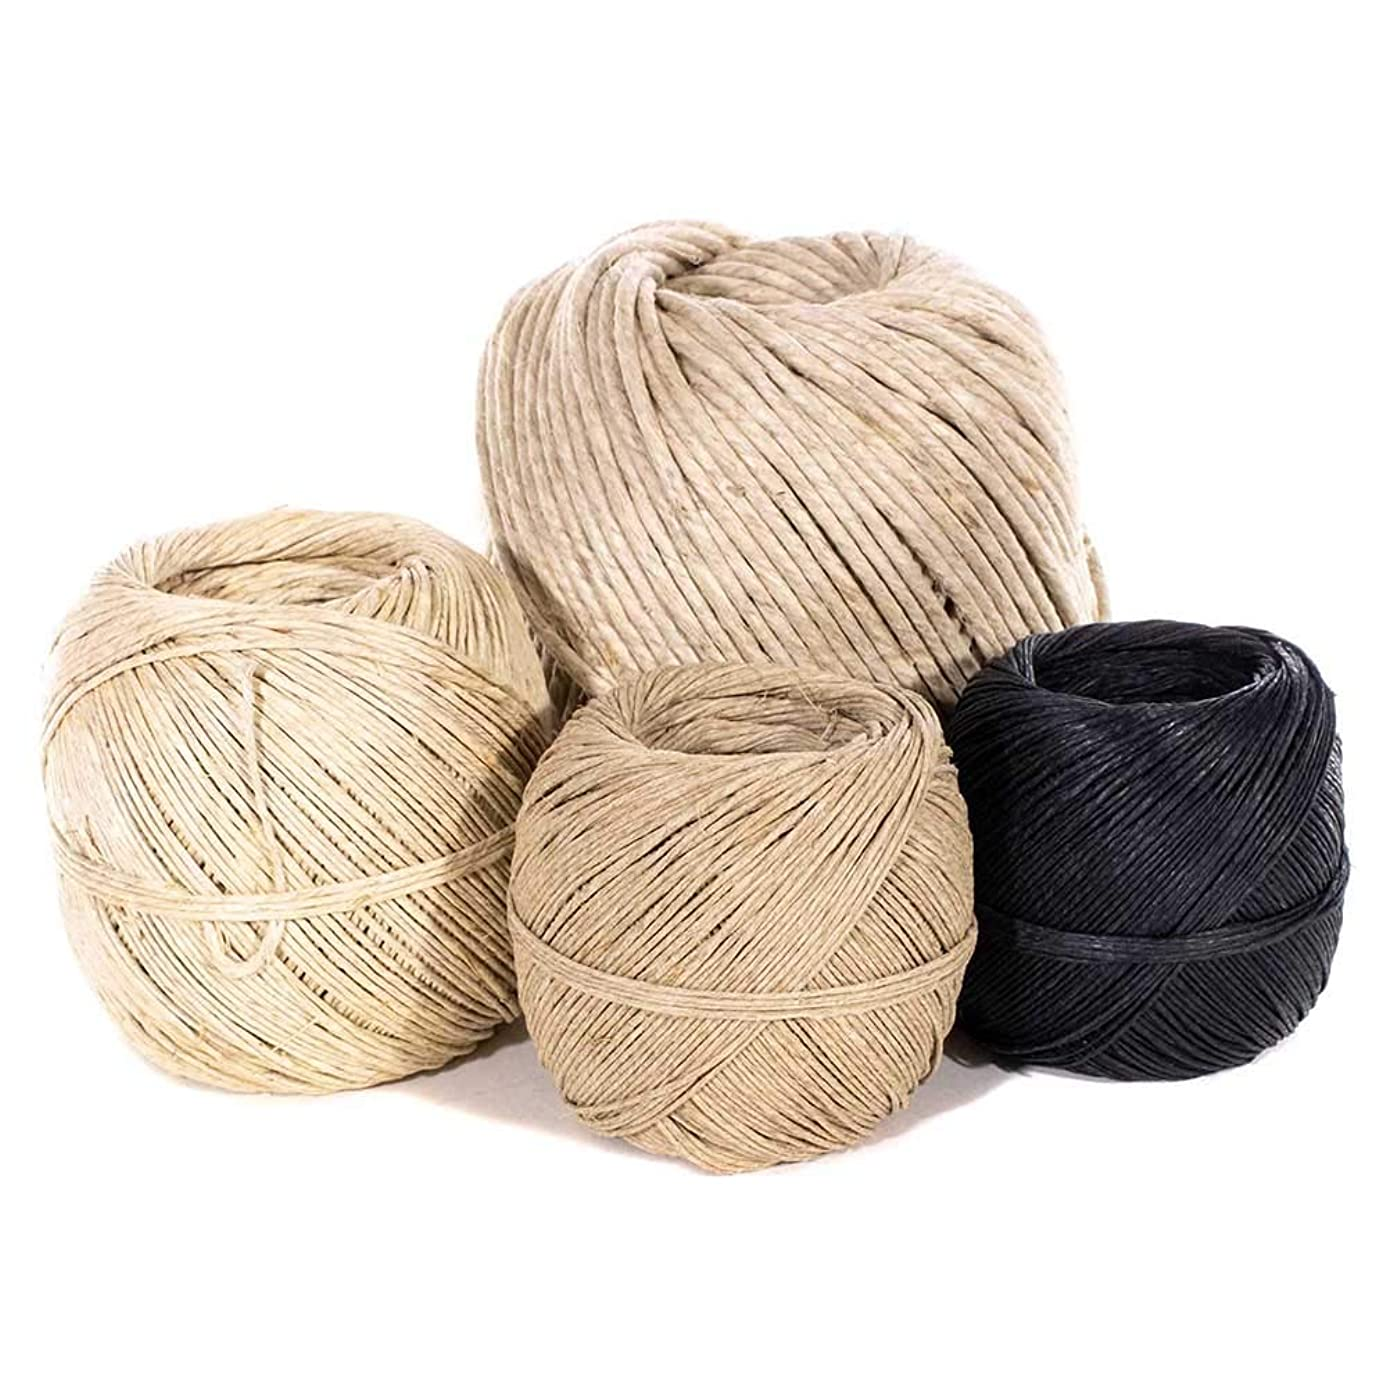 Hemp Cord – Wrapped in a Ball – Great for Crafting, Binding, Packaging, and Decoration (Natural, 380 Feet - 1mm)